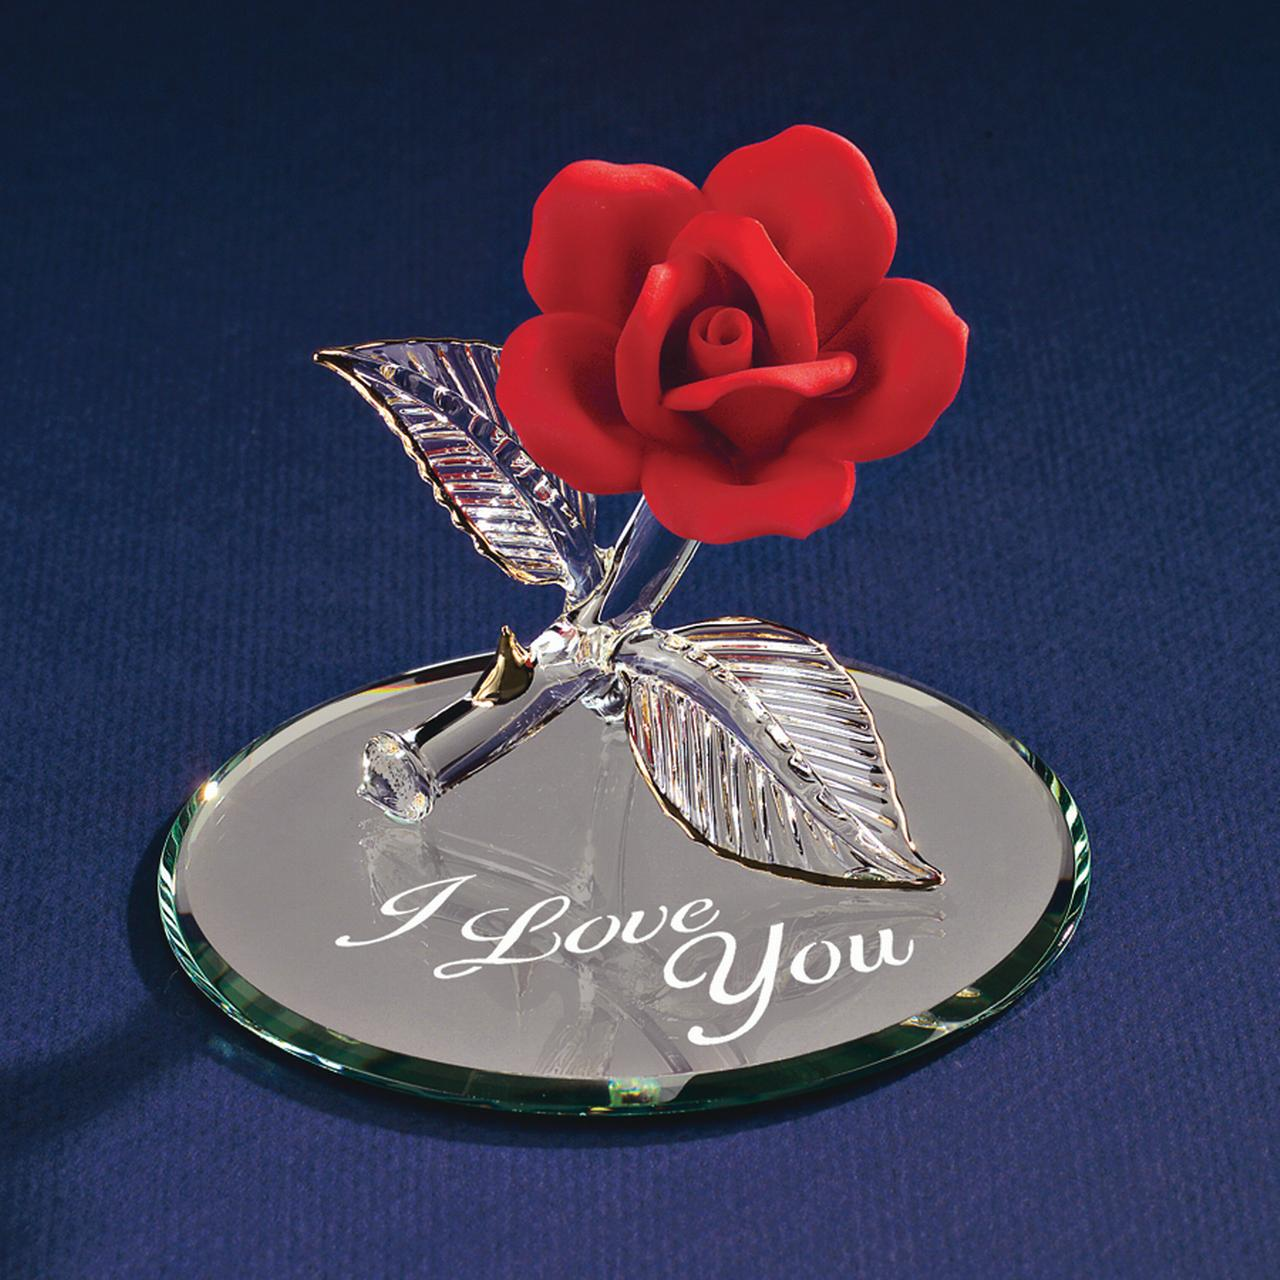 Red Rose I Love You Glass Figurine Floral Garden Nautical Keepsake Glas Baron Gifts For Women For Her